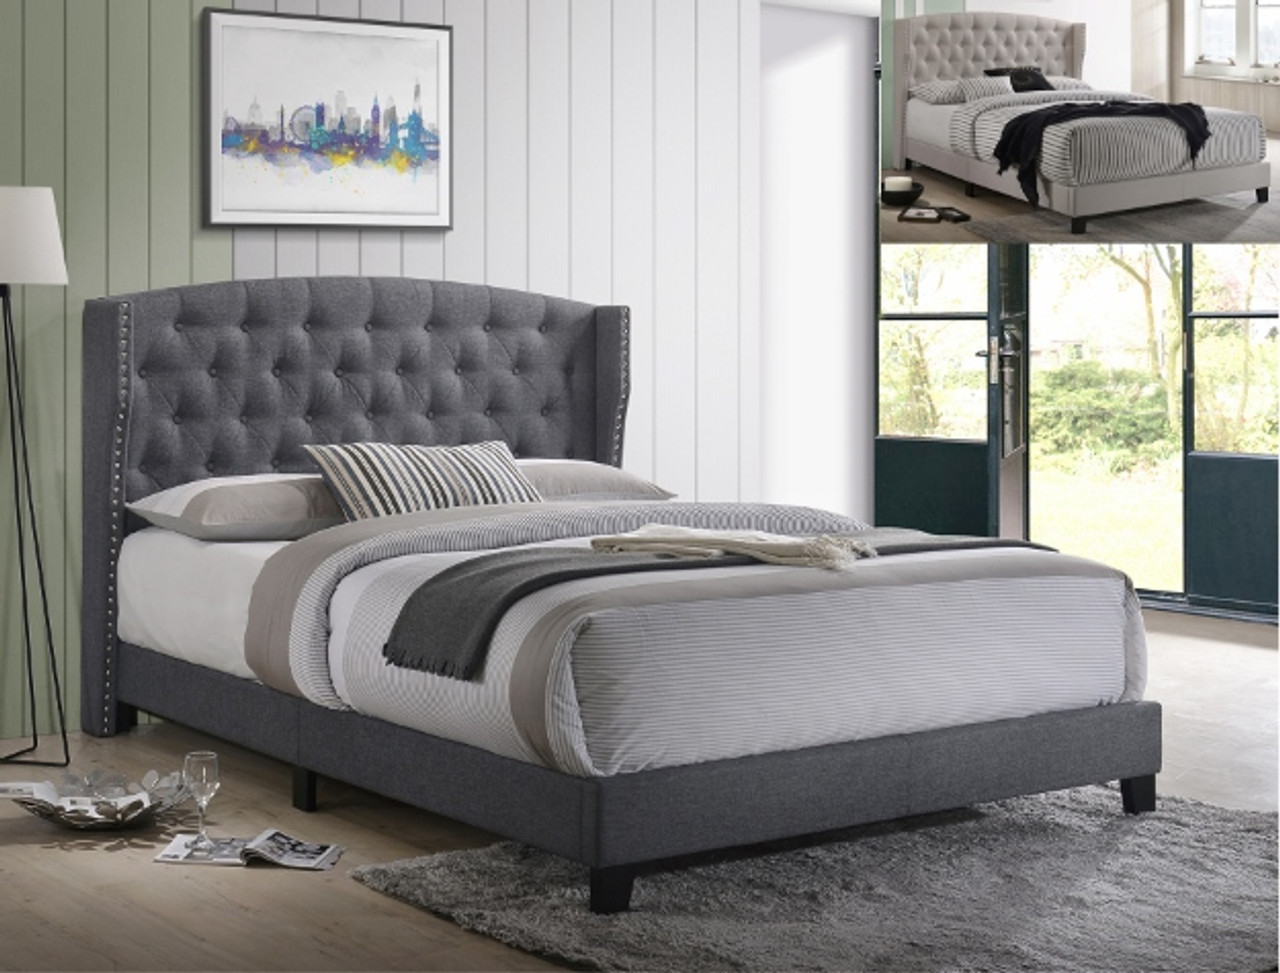 Rosemary Cal King Platform Bed Grey Finish On Sale At Montana S Home Furniture Serving Houston Tx